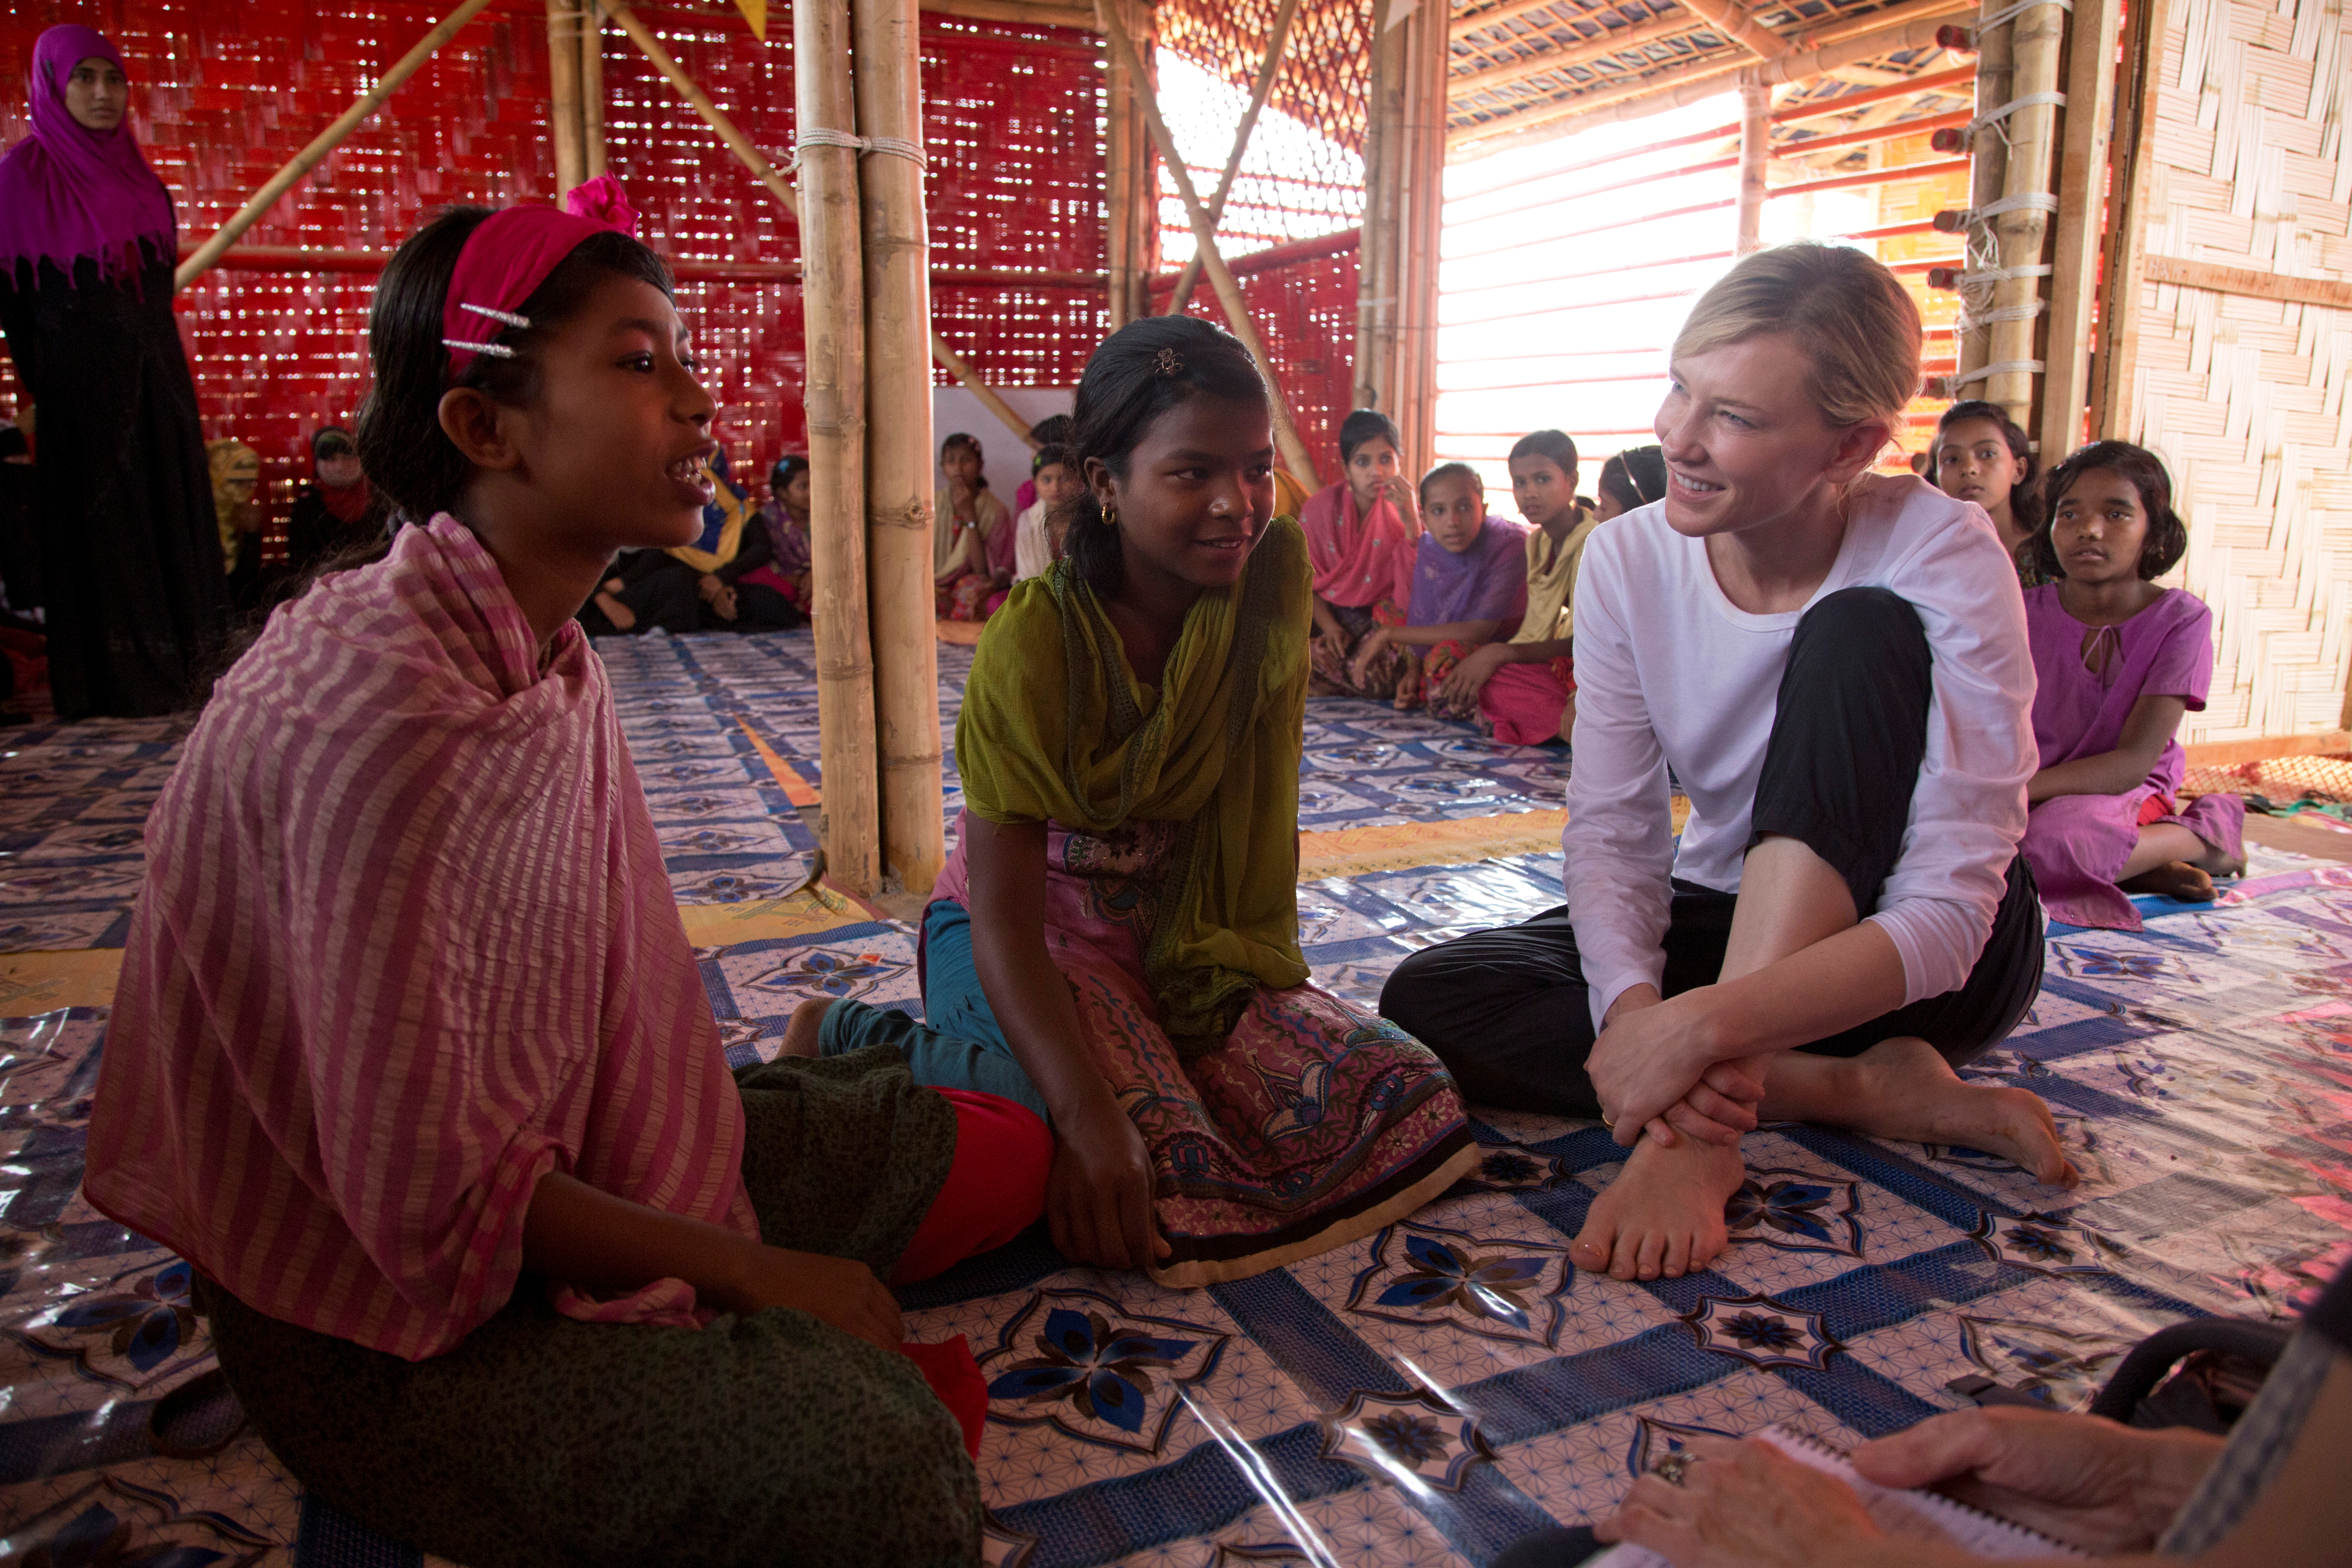 Cate Blanchett, Goodwill Ambassador for UNHCR, the UN Refugee Agency, meets young Rohingya refugees at the Temporary Learning Centre run by UNHCR's implementing partner, Community Development Centre (CODEC), in Kutupalong refugee camp, in Cox's Bazar, Bangladesh March 16, 2018. UNHCR/Hector Perez/Handout via REUTERS